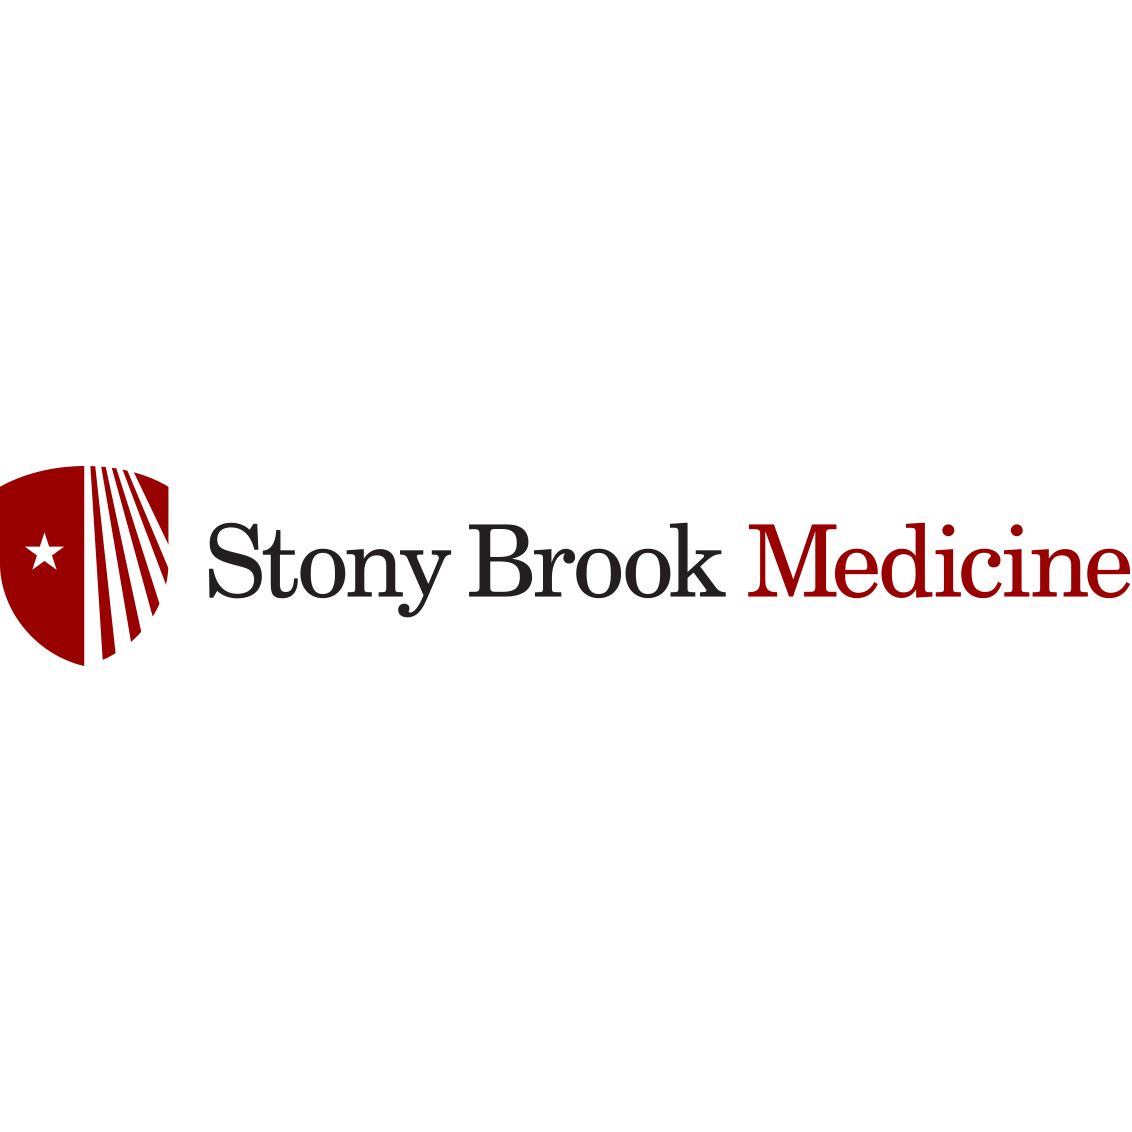 Stony Brook Imaging Center